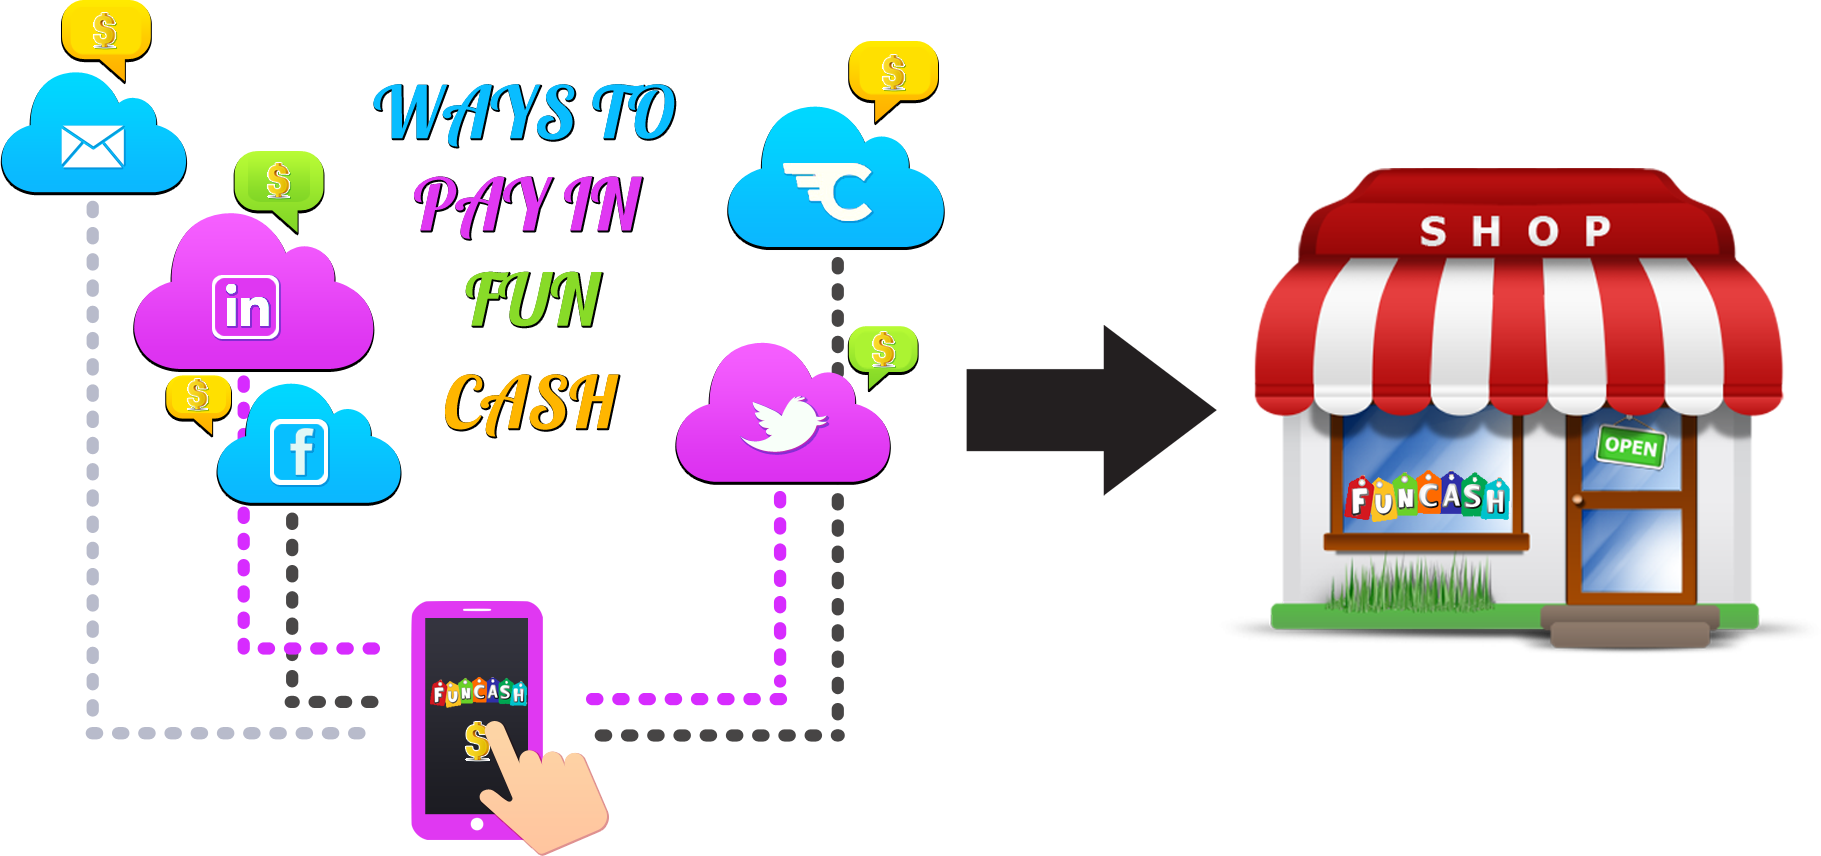 Ways to pay in Fun Cash